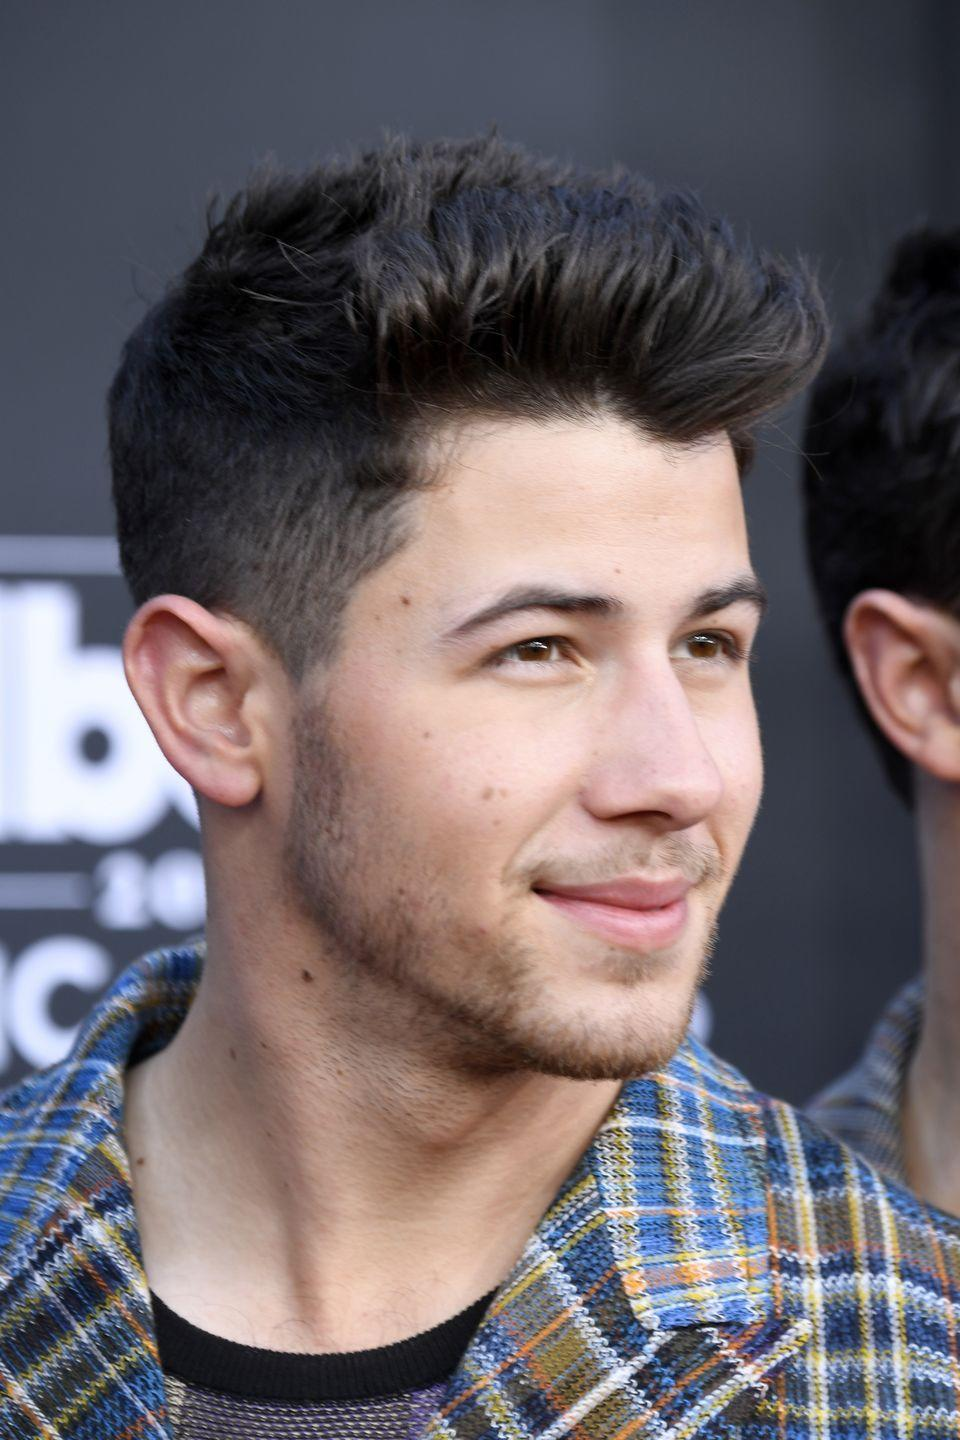 """<p>Nic Jonas, as well as his brothers Joe and Kevin, were all raised Christian. When Nick and Priyanka Chopra tied the knot, they had a <a href=""""https://www.cnn.com/2018/12/02/entertainment/priyanka-chopra-nick-jonas-indian-wedding/index.html"""" rel=""""nofollow noopener"""" target=""""_blank"""" data-ylk=""""slk:Hindu wedding celebration"""" class=""""link rapid-noclick-resp"""">Hindu wedding celebration</a> as well as <a href=""""https://ca.hellomagazine.com/brides/02018120348863/priyanka-chopra-nick-jonas-christian-wedding-first-photo"""" rel=""""nofollow noopener"""" target=""""_blank"""" data-ylk=""""slk:a Christian wedding"""" class=""""link rapid-noclick-resp"""">a Christian wedding</a>, officiated by Nick's father, who is a former minister with the Assemblies of God church. </p>"""